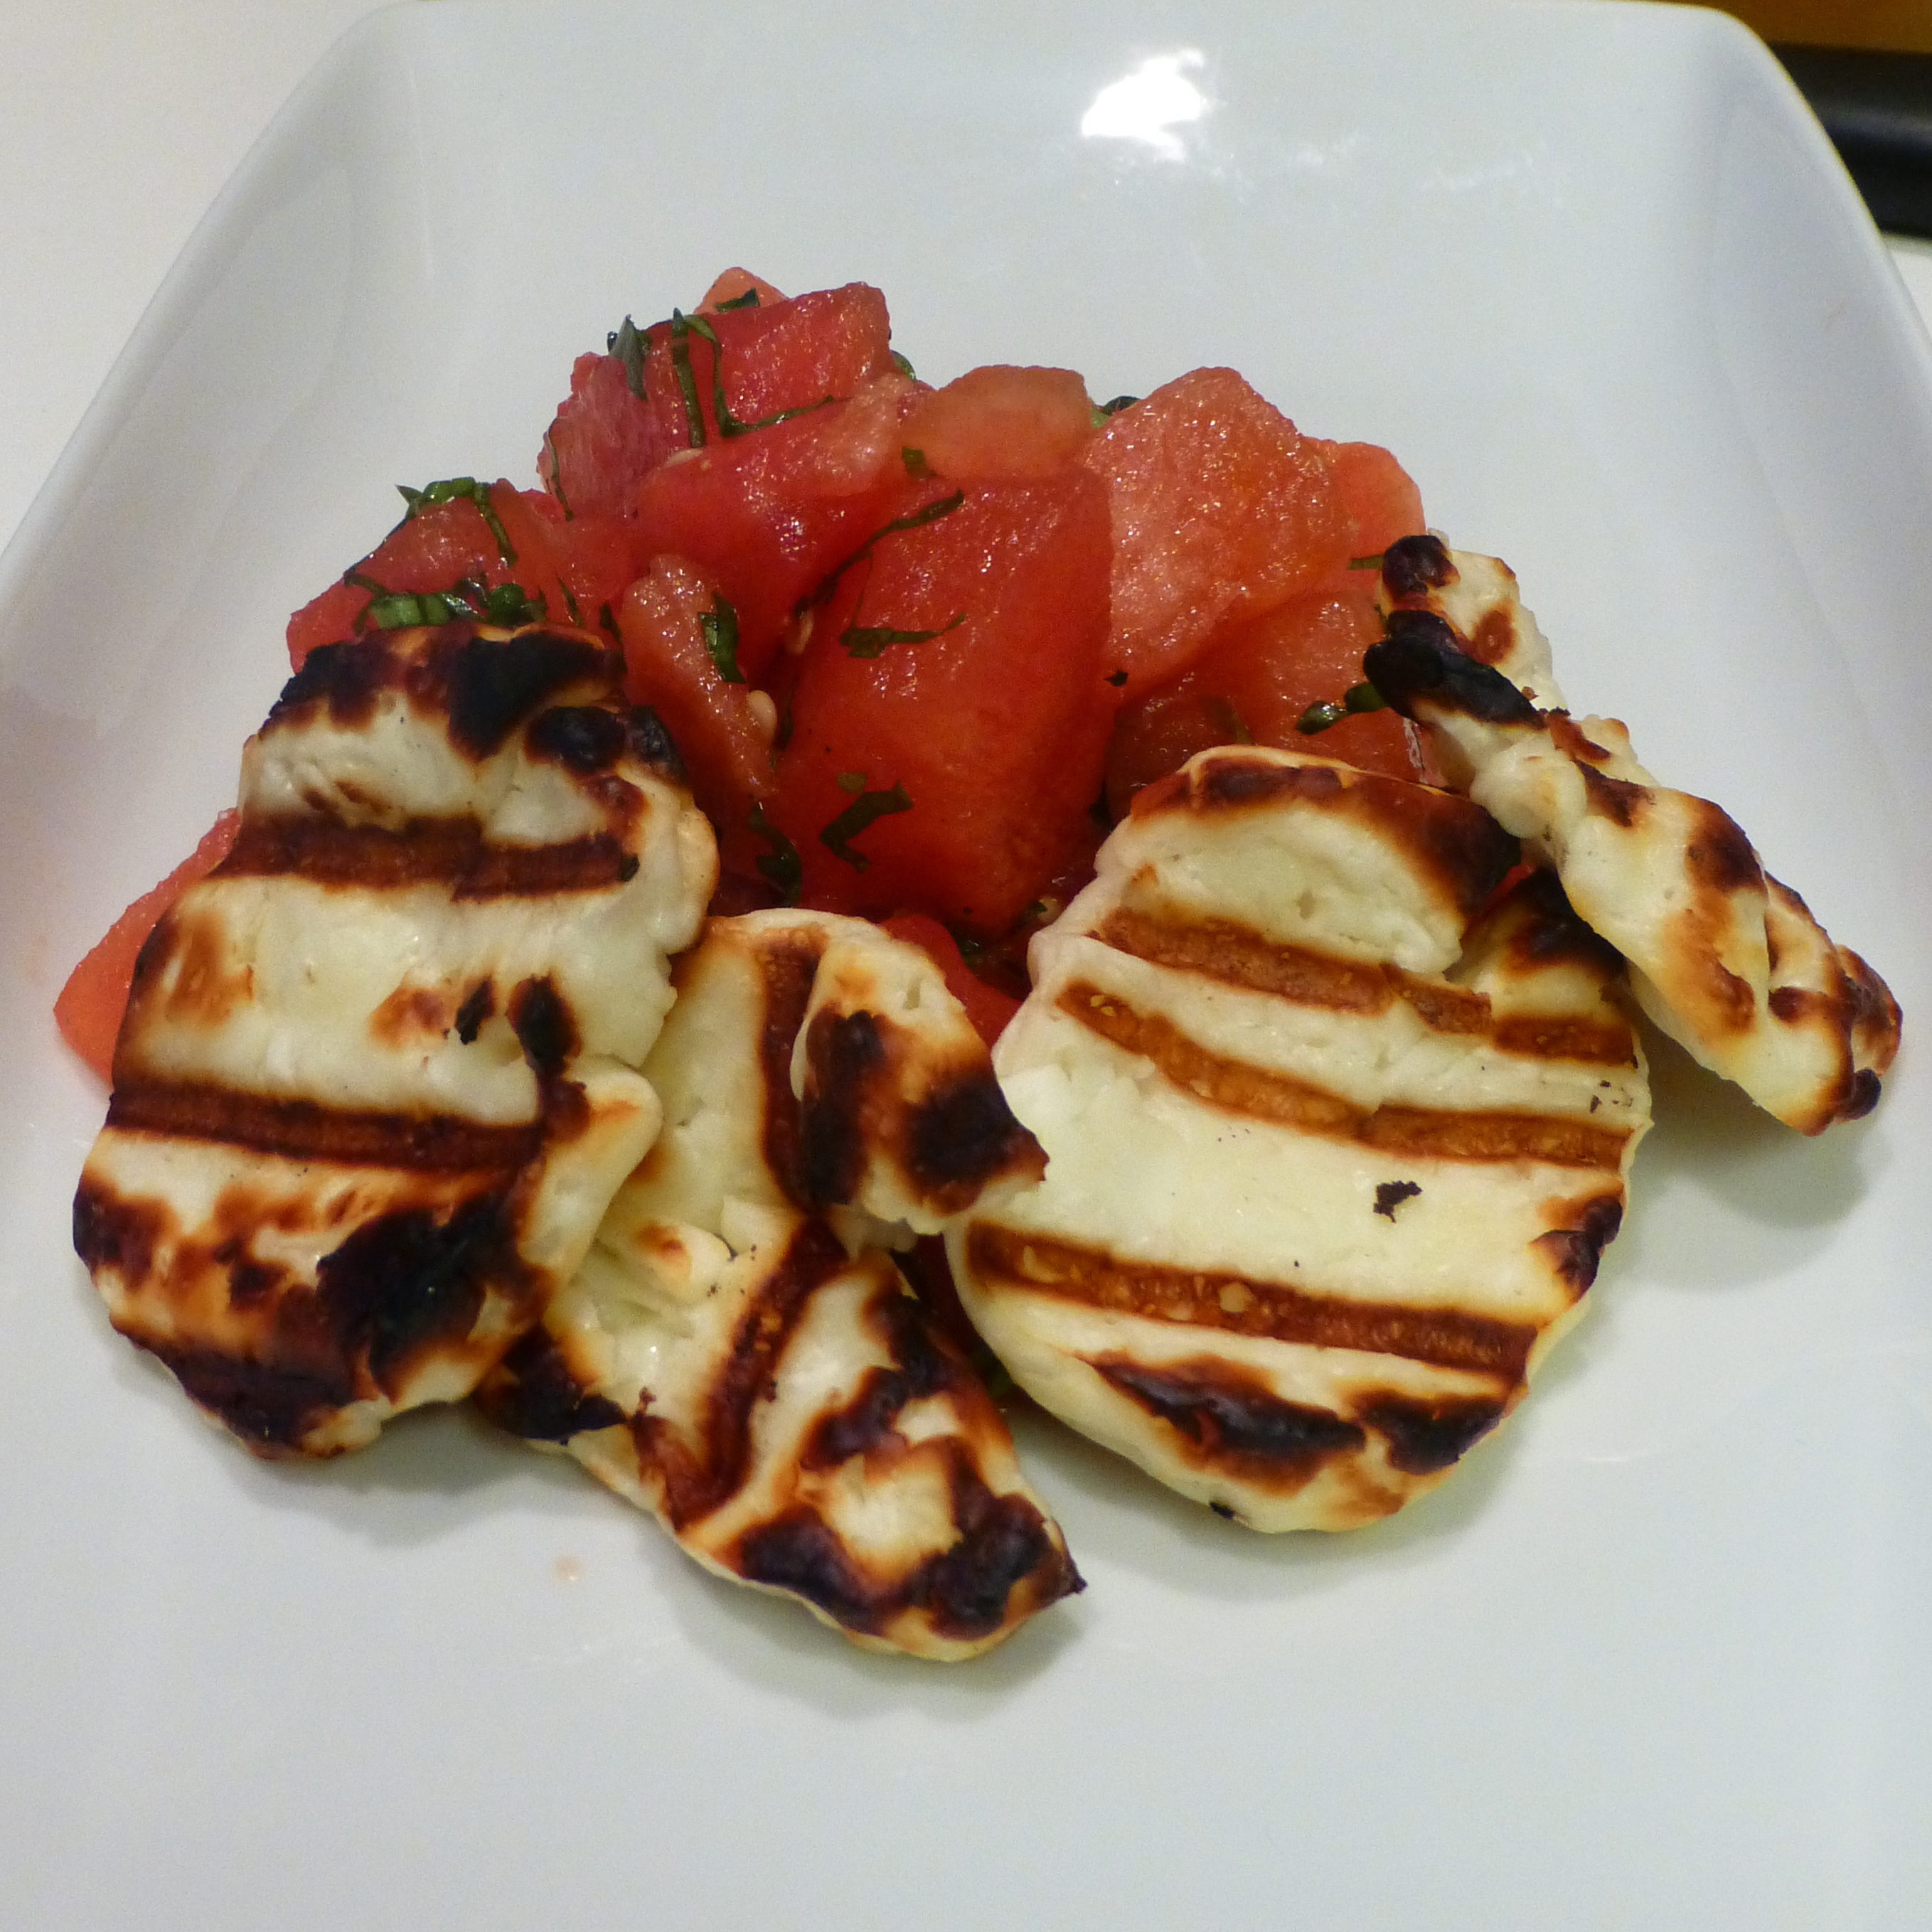 Watermelon Salad with Grilled Halloumi